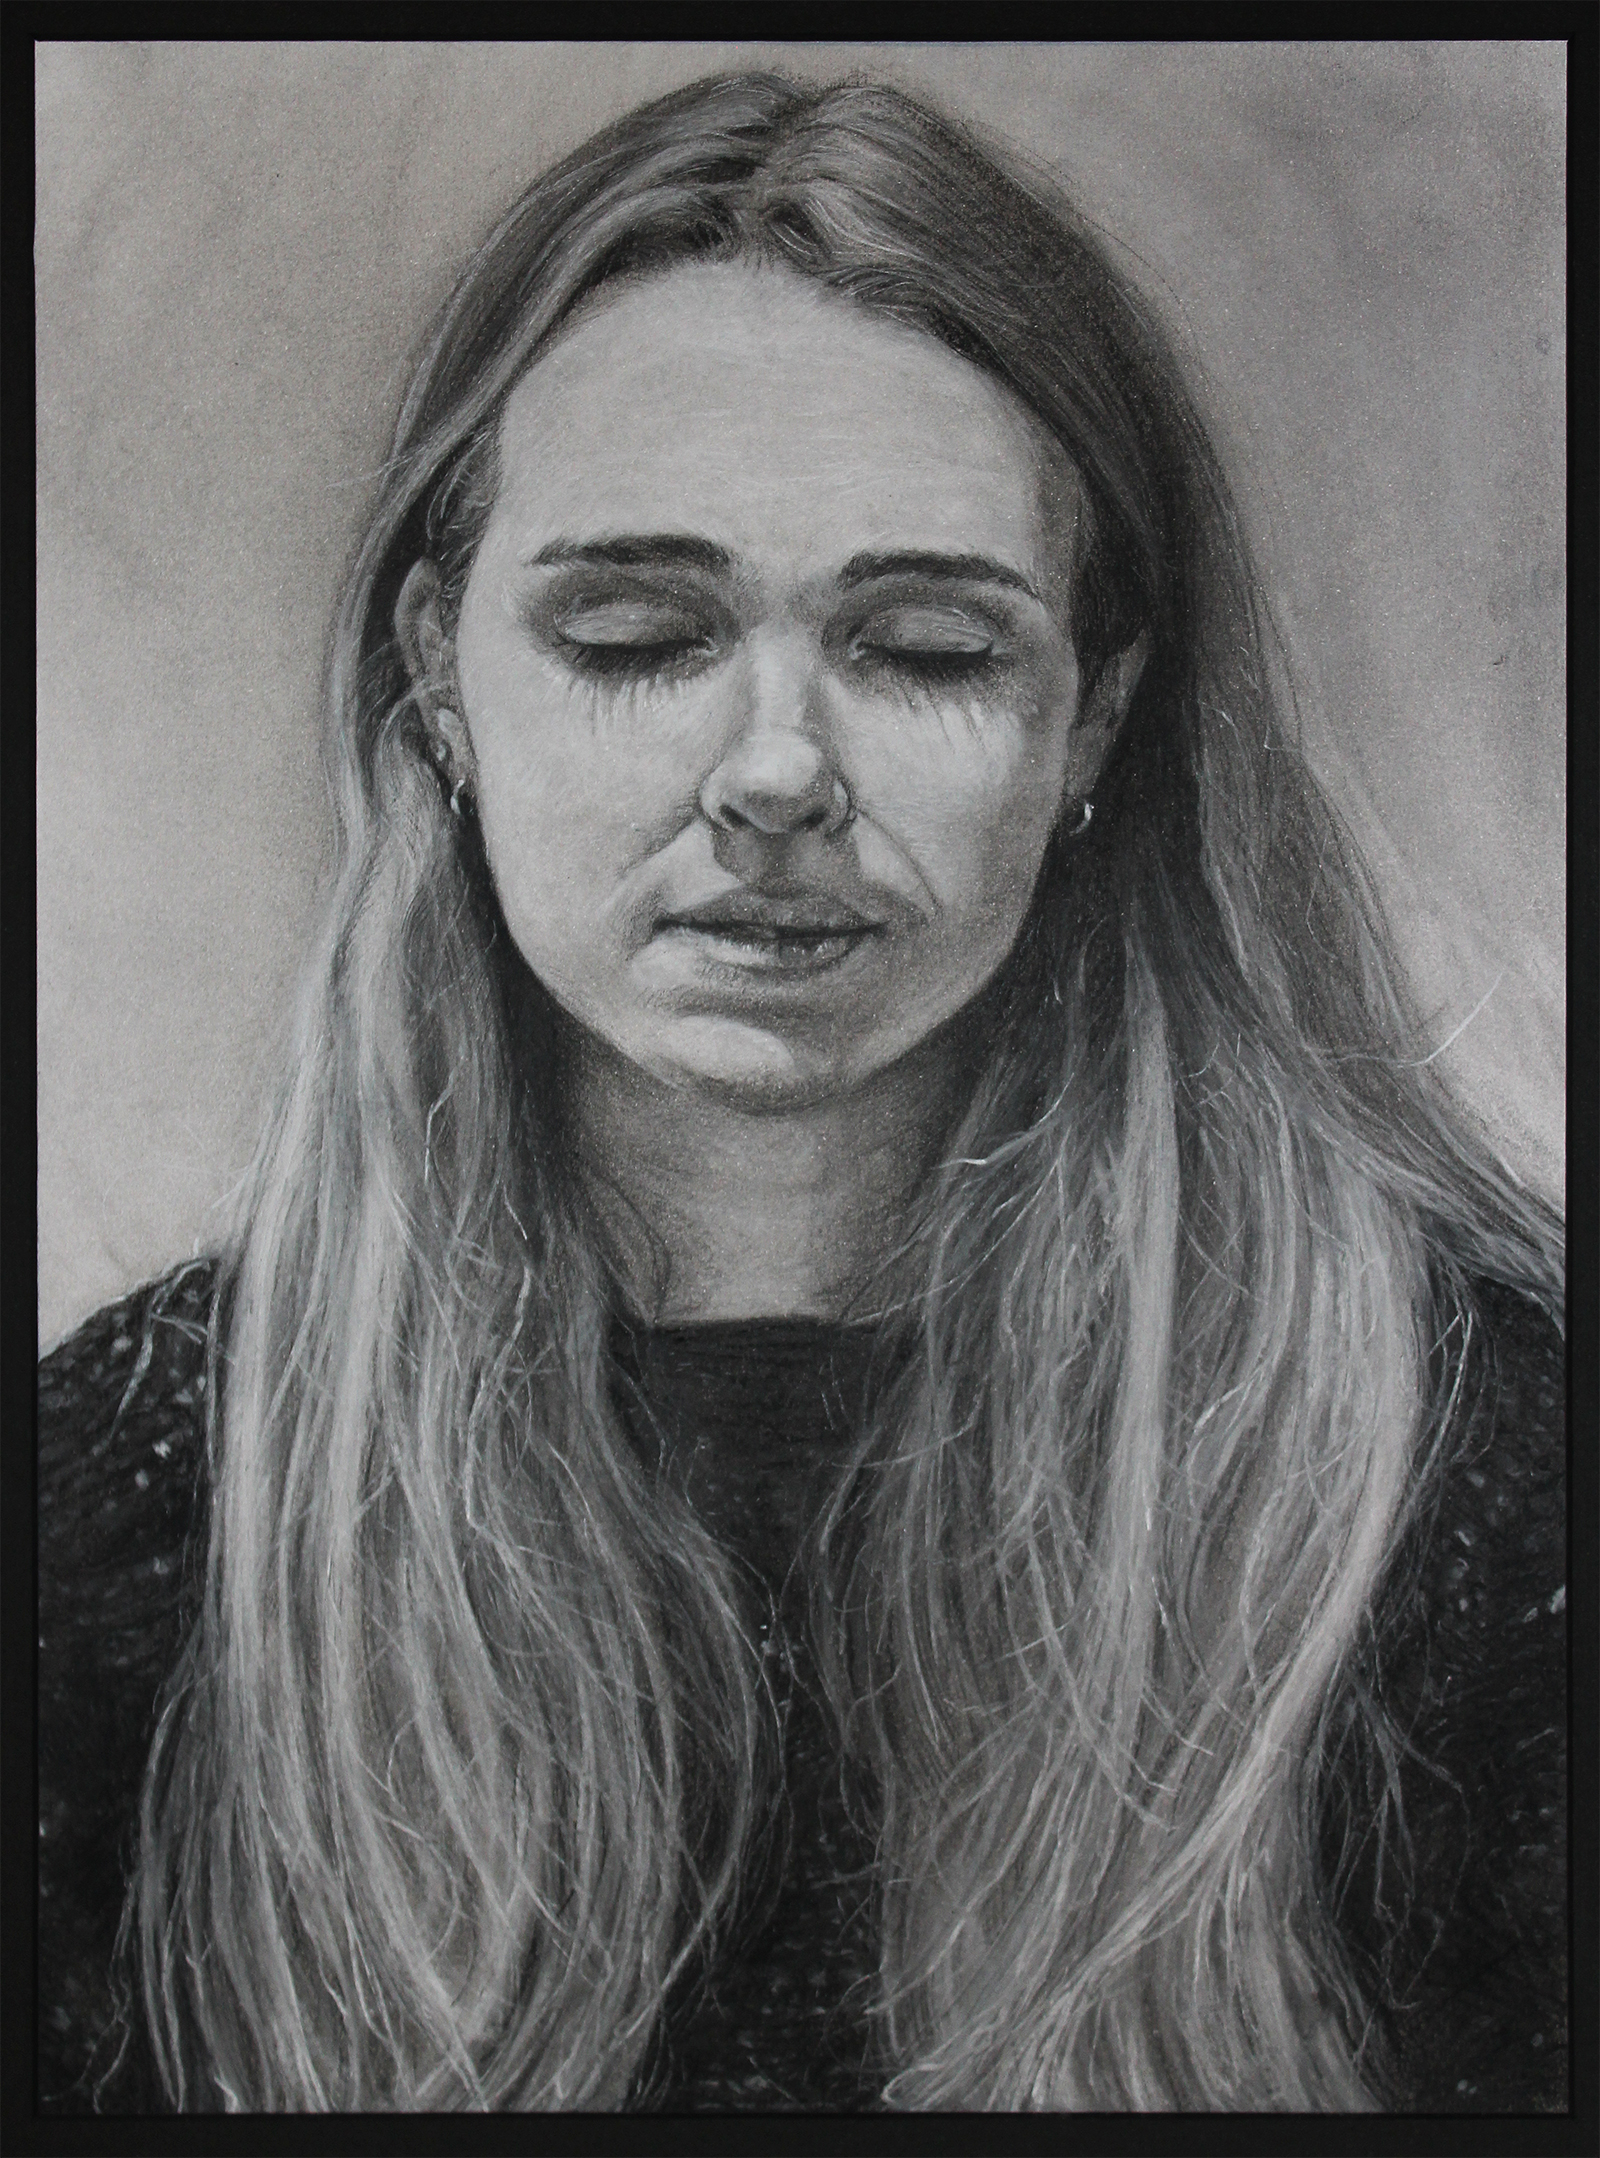 charcoal portrait of a woman with her eyes closed